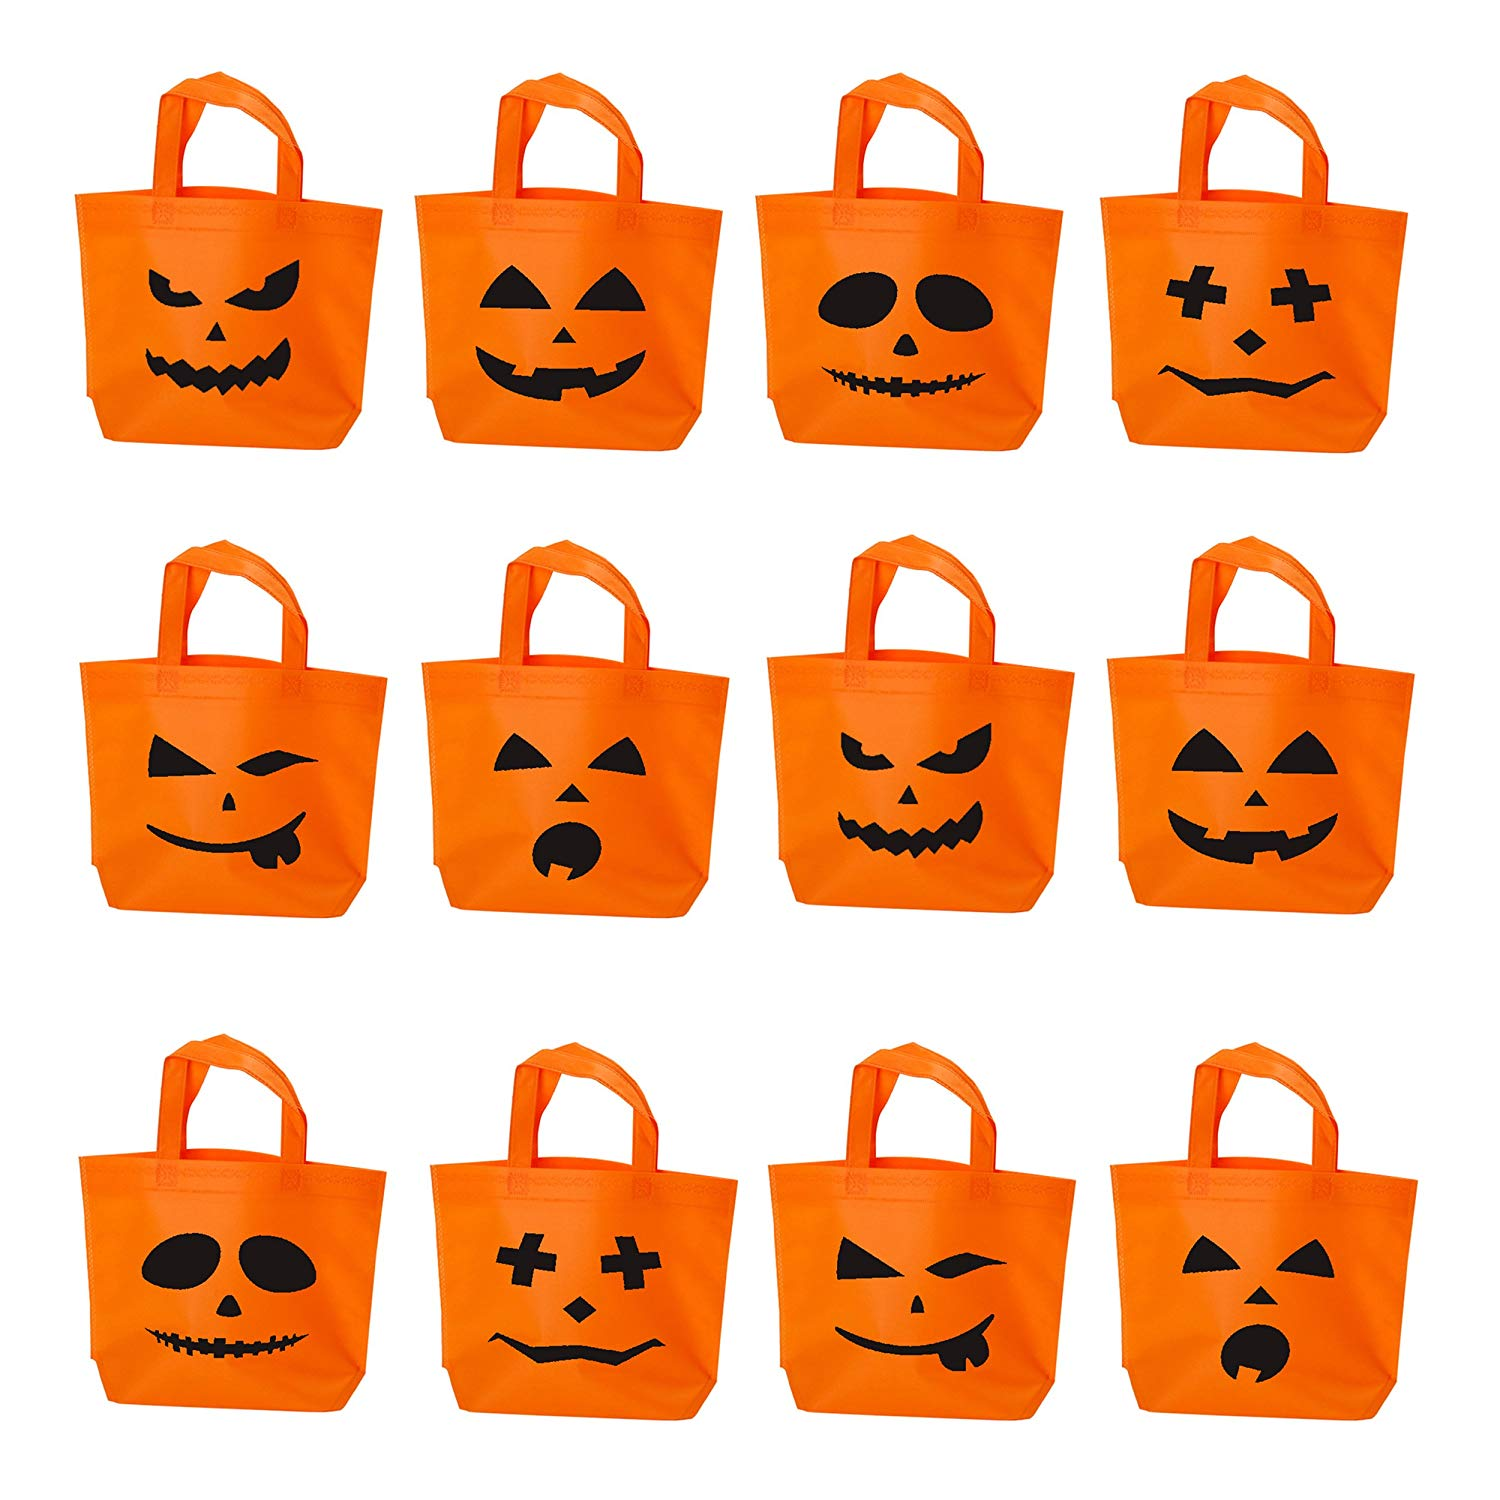 Halloween Trick or Treat Candy Tote Bags | Pumpkin Face Jack O Lantern Kids Goodie Handy Bag with Handle, for Costume, Sweets, Decorations, Party Favors - Set of 12